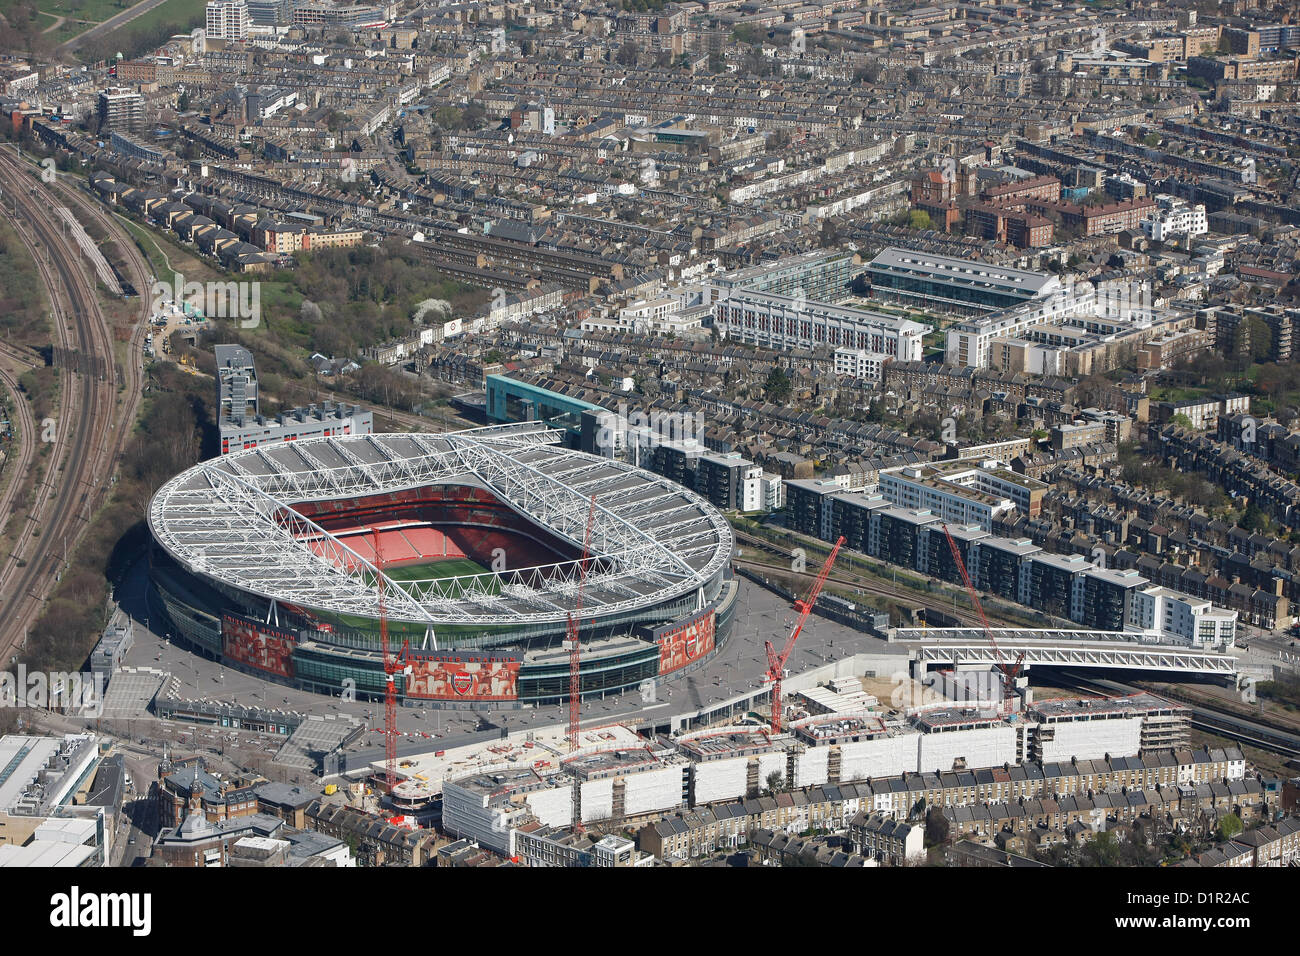 Aerial photograph showing The Emirates Stadium in relation to Highbury - Stock Image